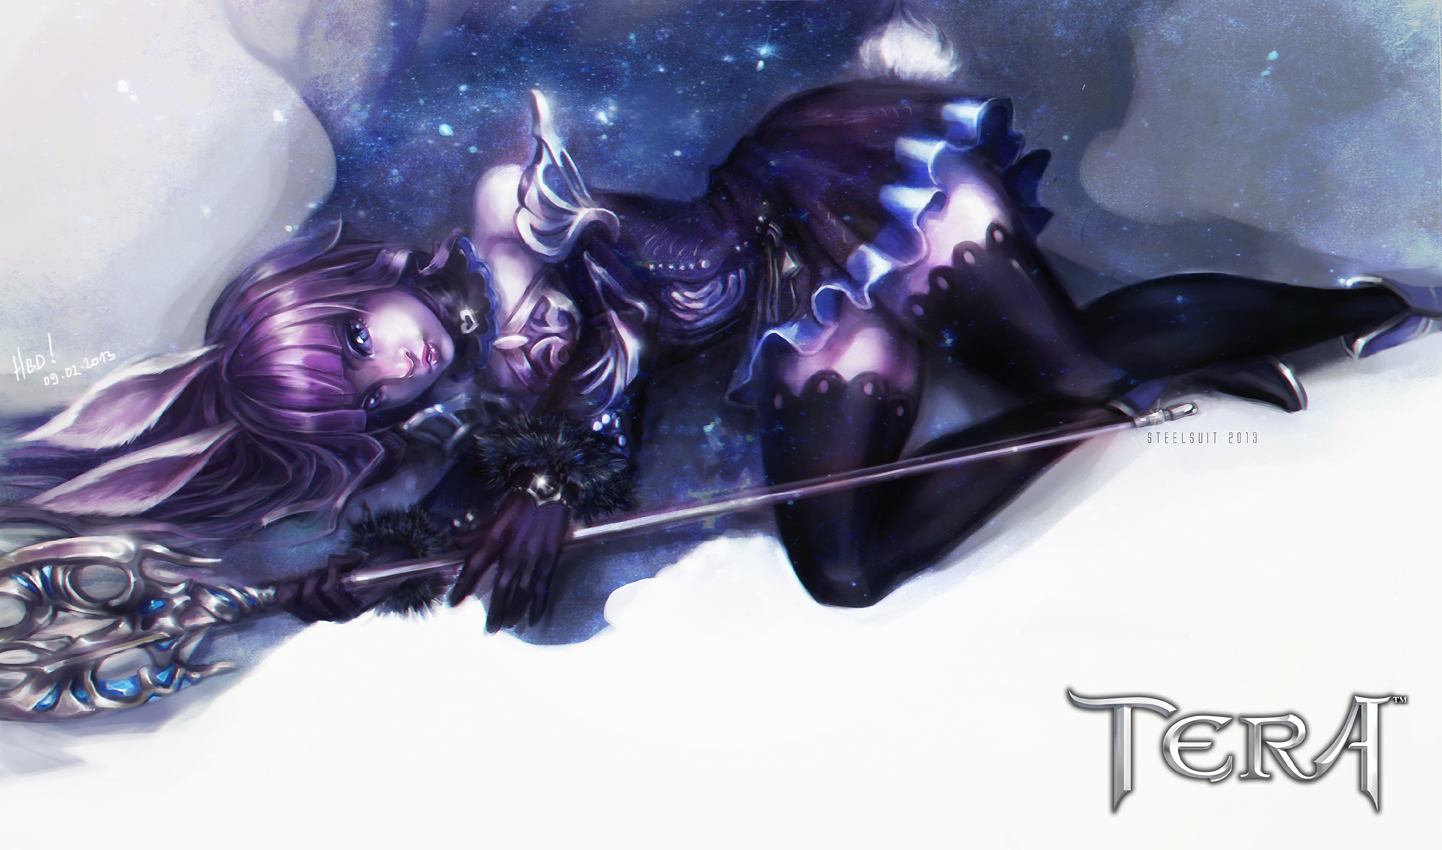 tera: 09.02.013 by steelsuit